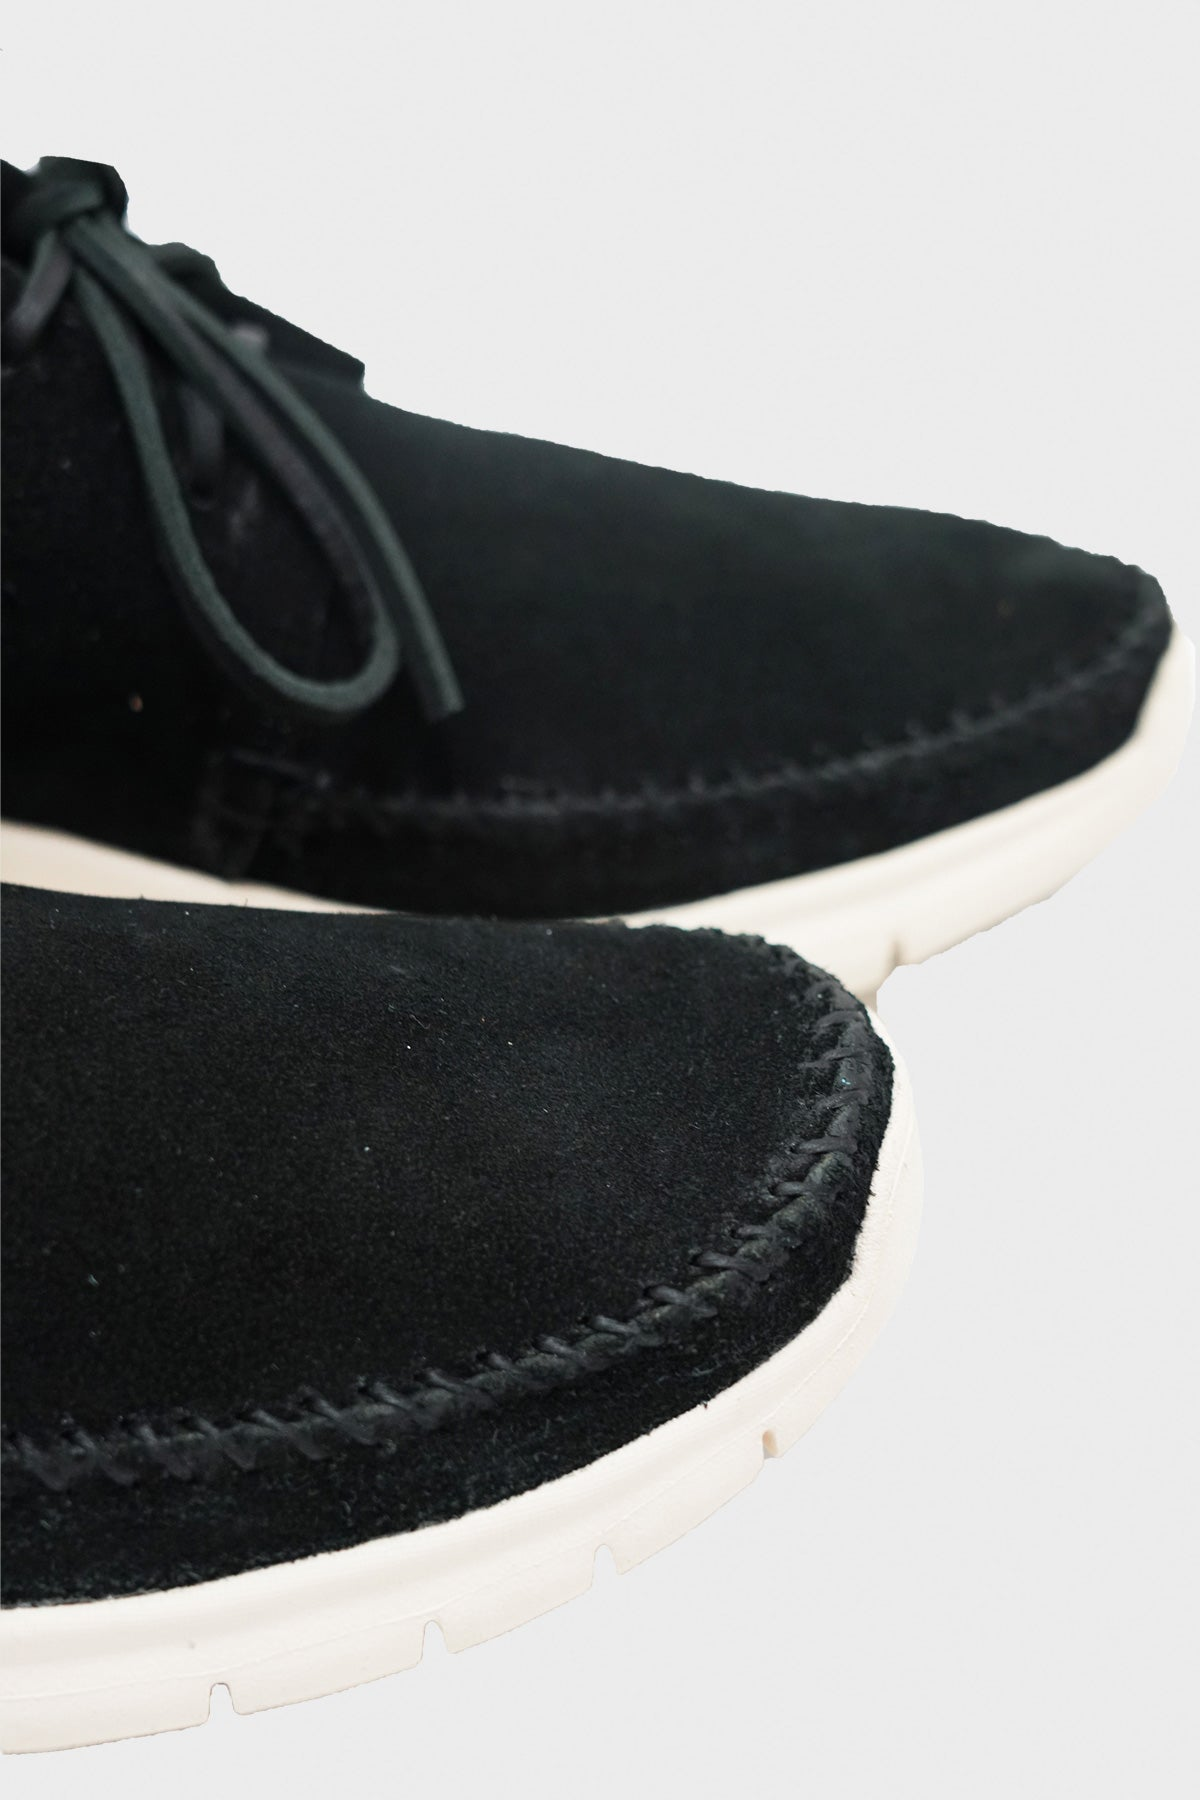 Visvim - Ute Moc Trainer Mid-Folk - Black - Canoe Club